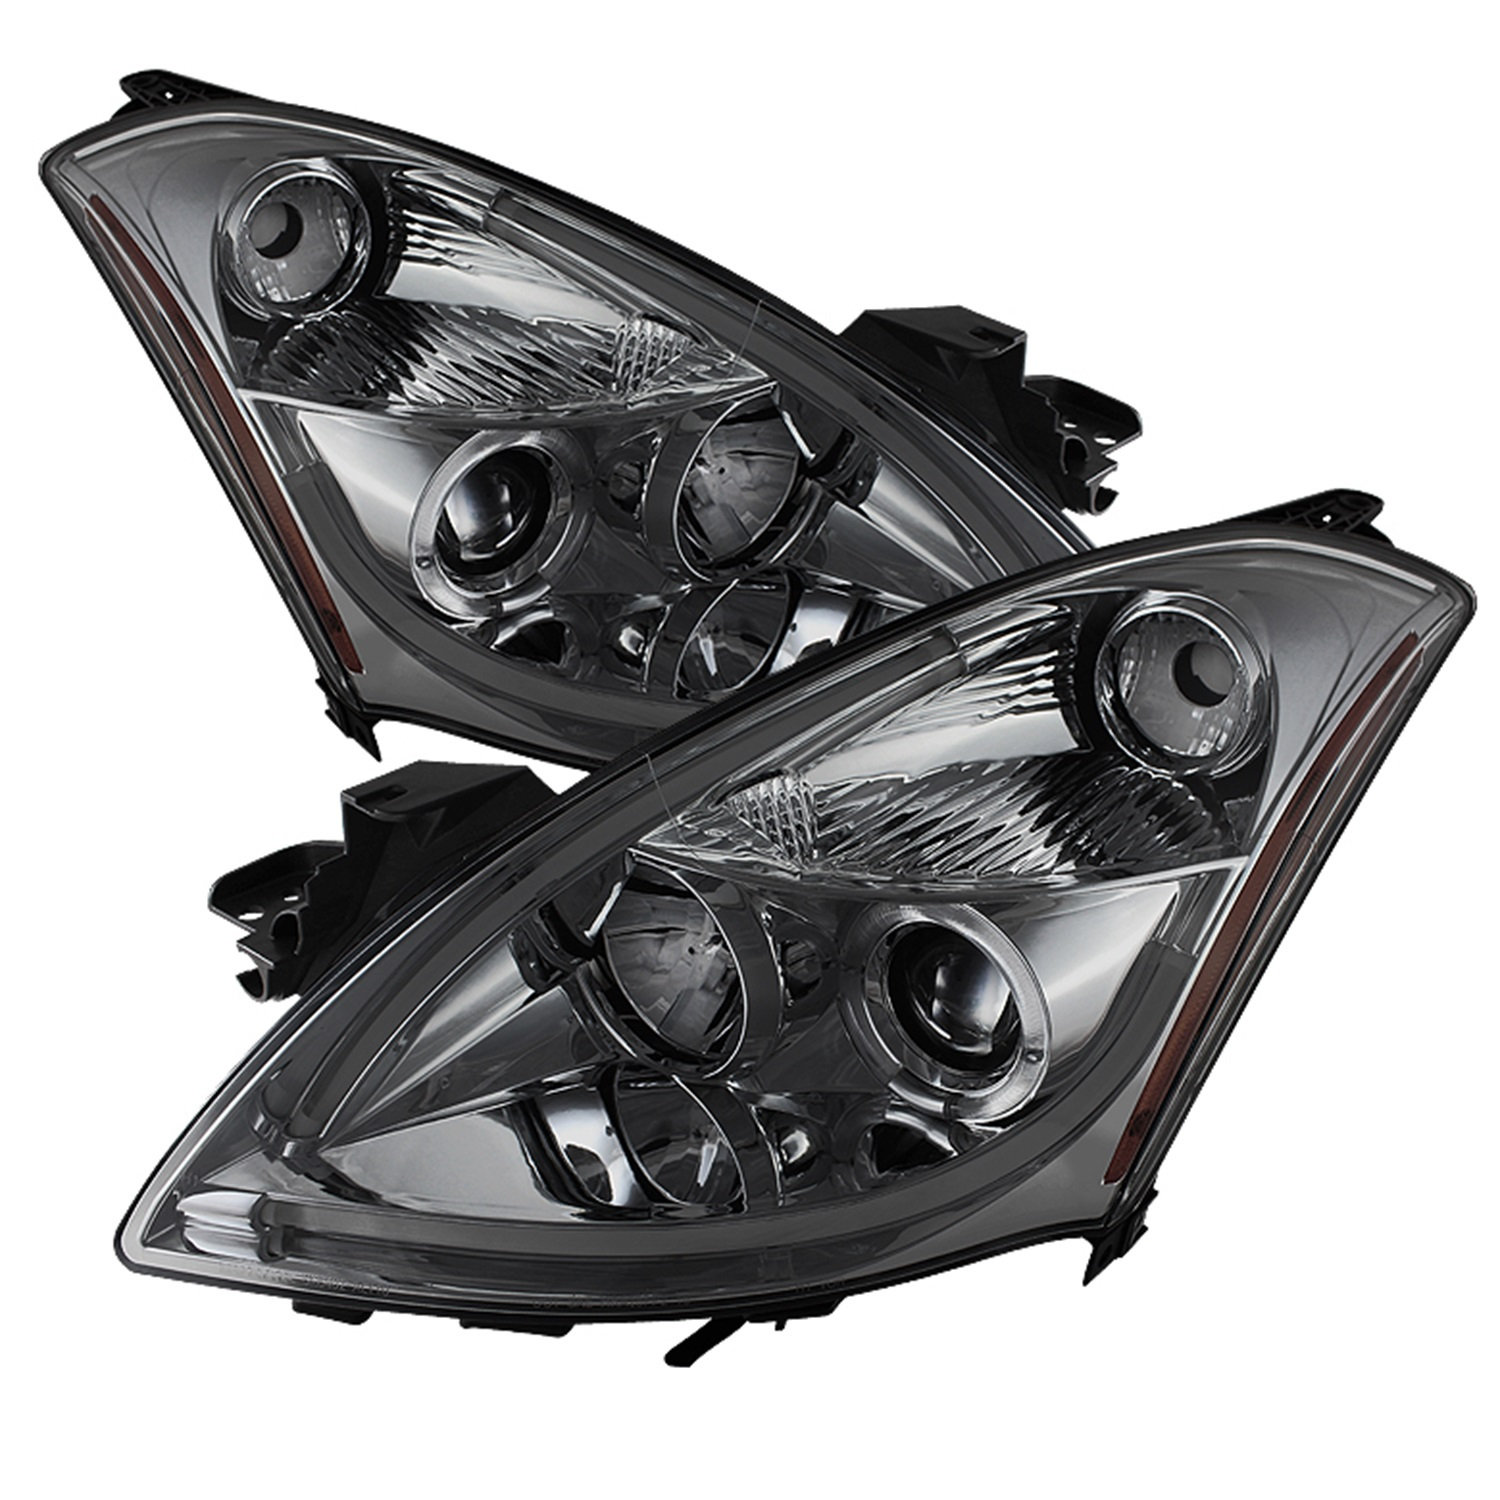 Spyder Nissan Altima 4Dr 2010-2012 Projector Headlights - Light Tube DRL - High H1 (Included) - Low H1 (Included) LED Halo - Smoke